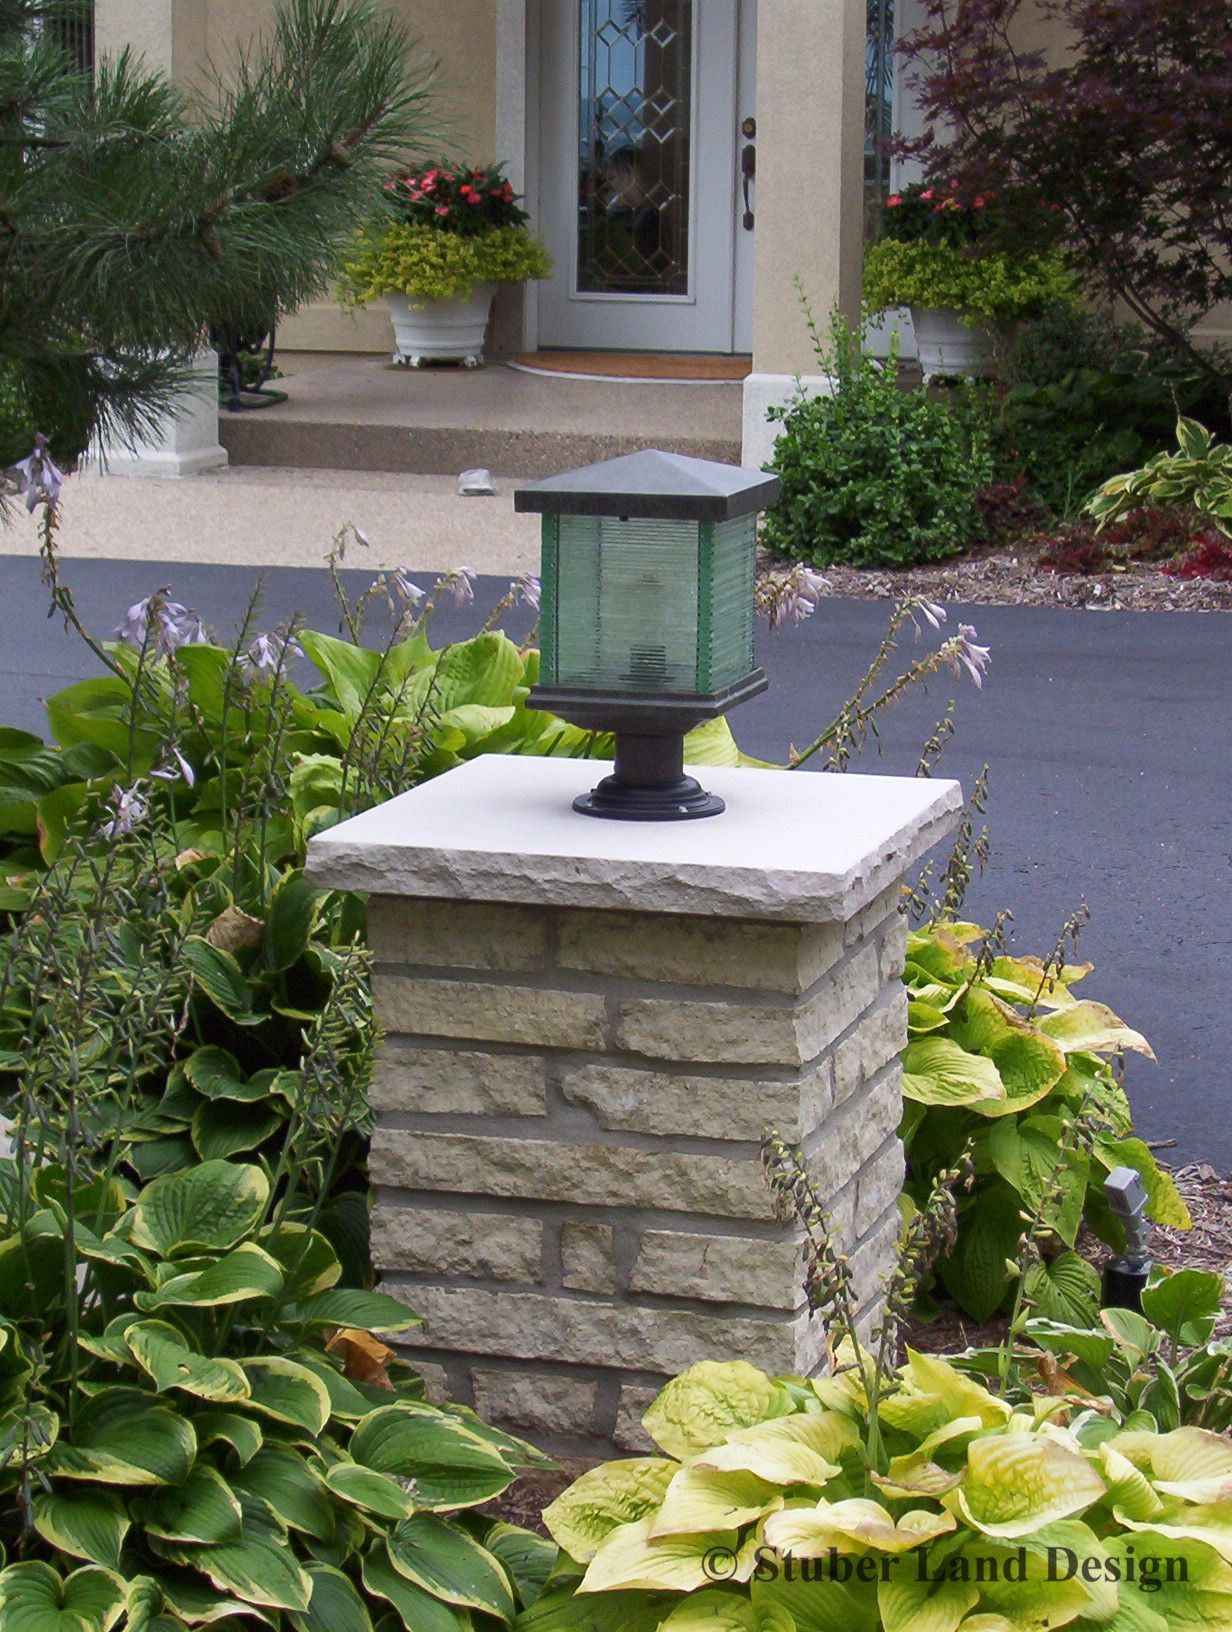 Mortared stone pillar with landscape lighting columns for Driveway landscape lighting